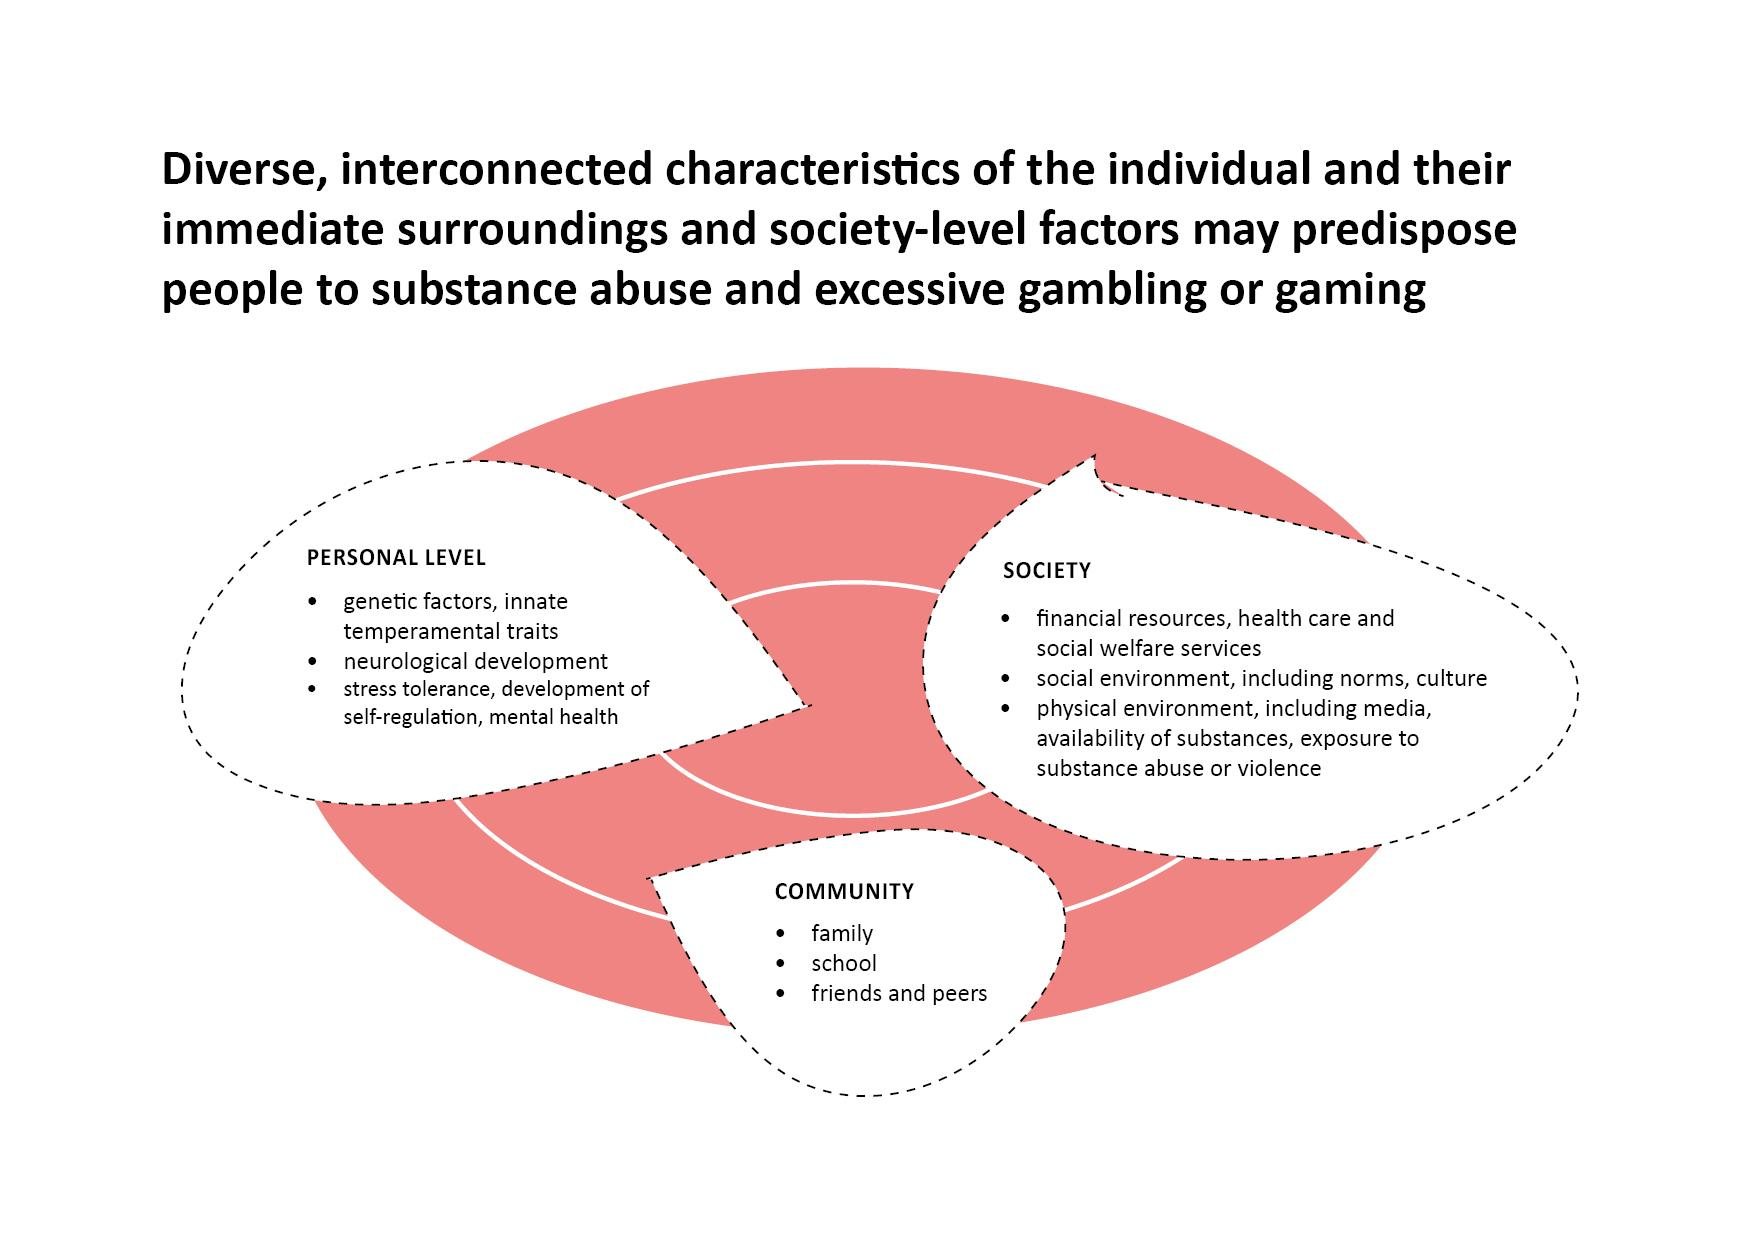 Infograph. Substance abuse and gambling can be exposed to a variety of interconnected characteristics of the individual and their immediate surroundings, as well as society-level factors. Protective and predisposing factors can be viewed at the personal, community, and societal levels. On a personal level, genetic factors, innate temperament traits, neurological development, stress tolerance, development of self-regulation, and mental health affect. The community level is influenced by family, school, and friends and peers. At the level of society, e.g. economic resources, health and social services, social environment, e.g. norms and culture. The physical environment also affects, e.g. media, drug availability and exposure to drug use or violence.